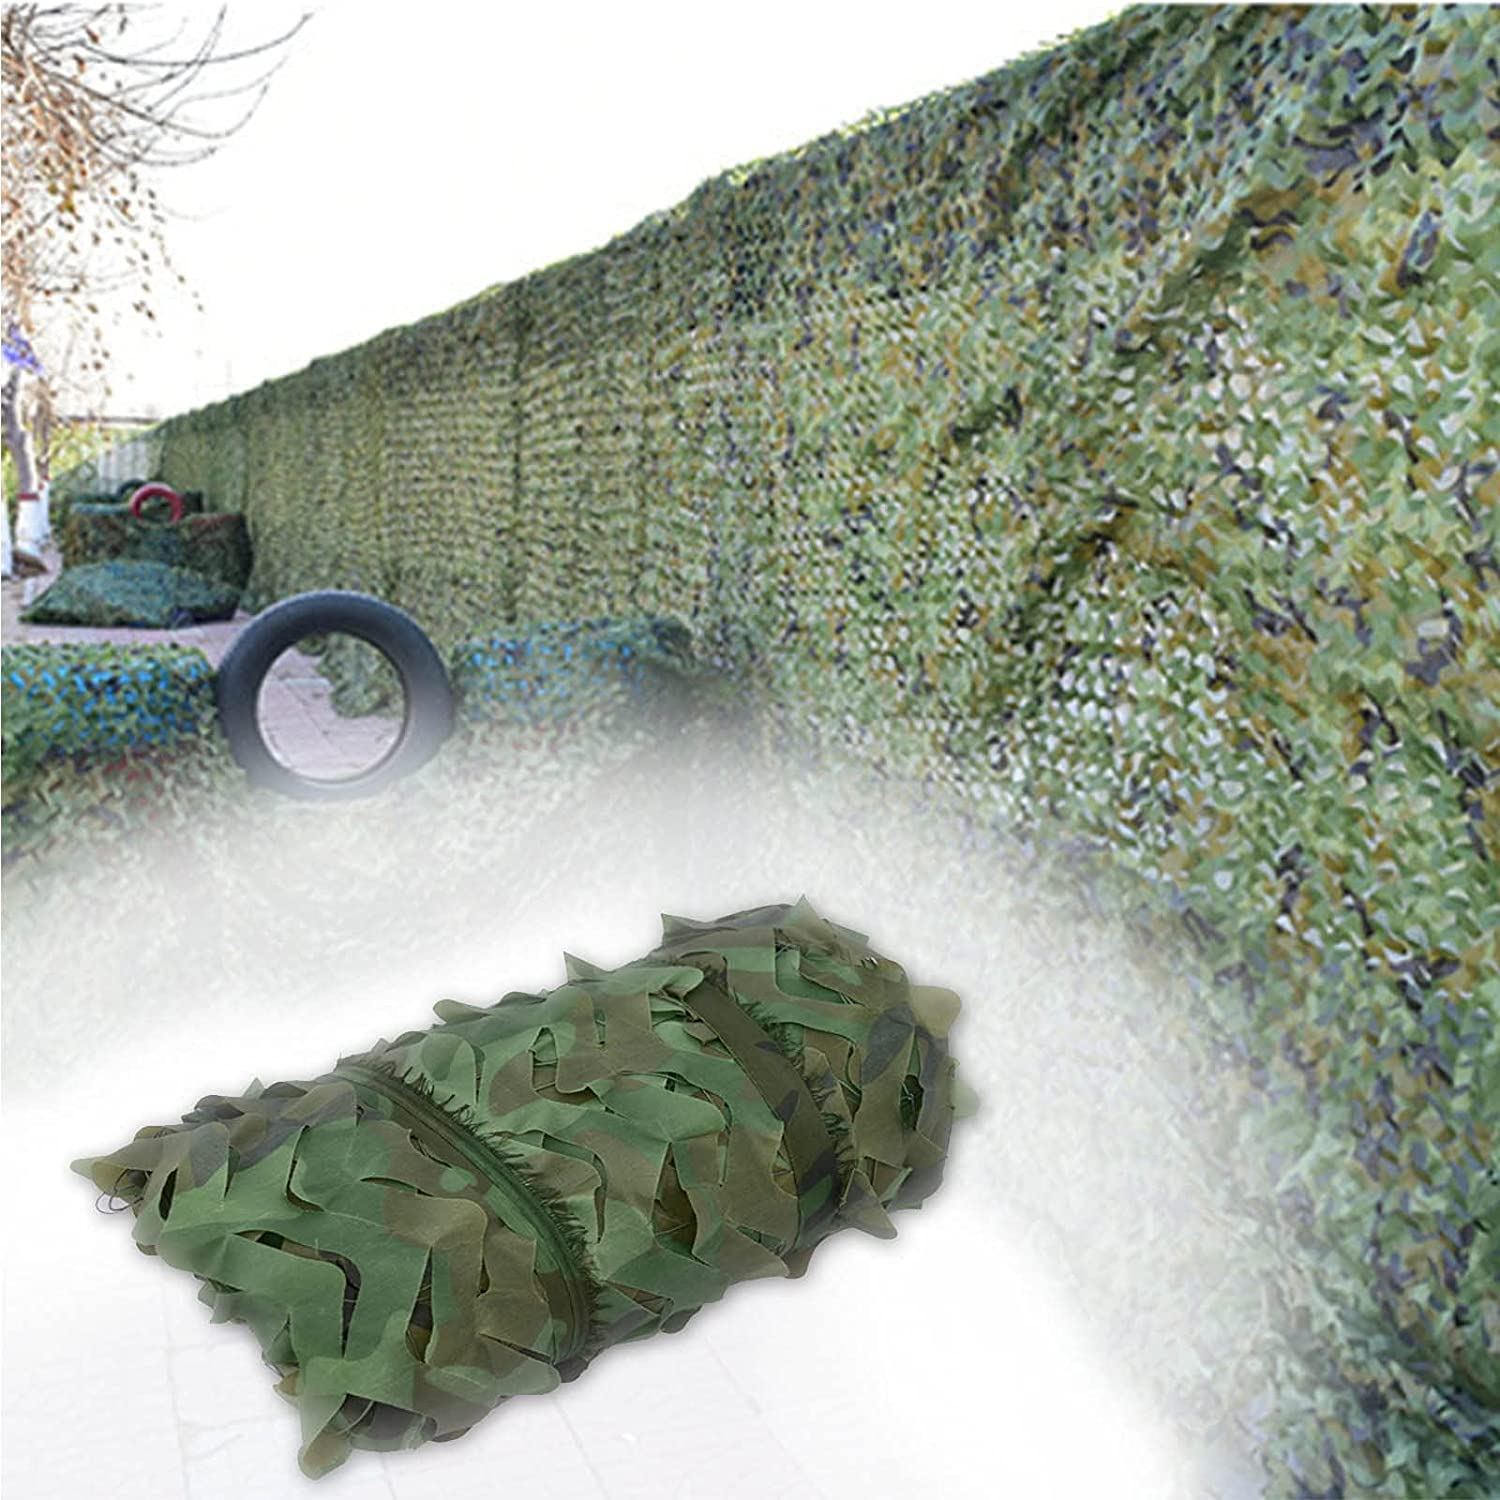 YiDD Jungle camo Netting Online Cheap SALE Start limited product Military Camouflage Campin Nets Hunting